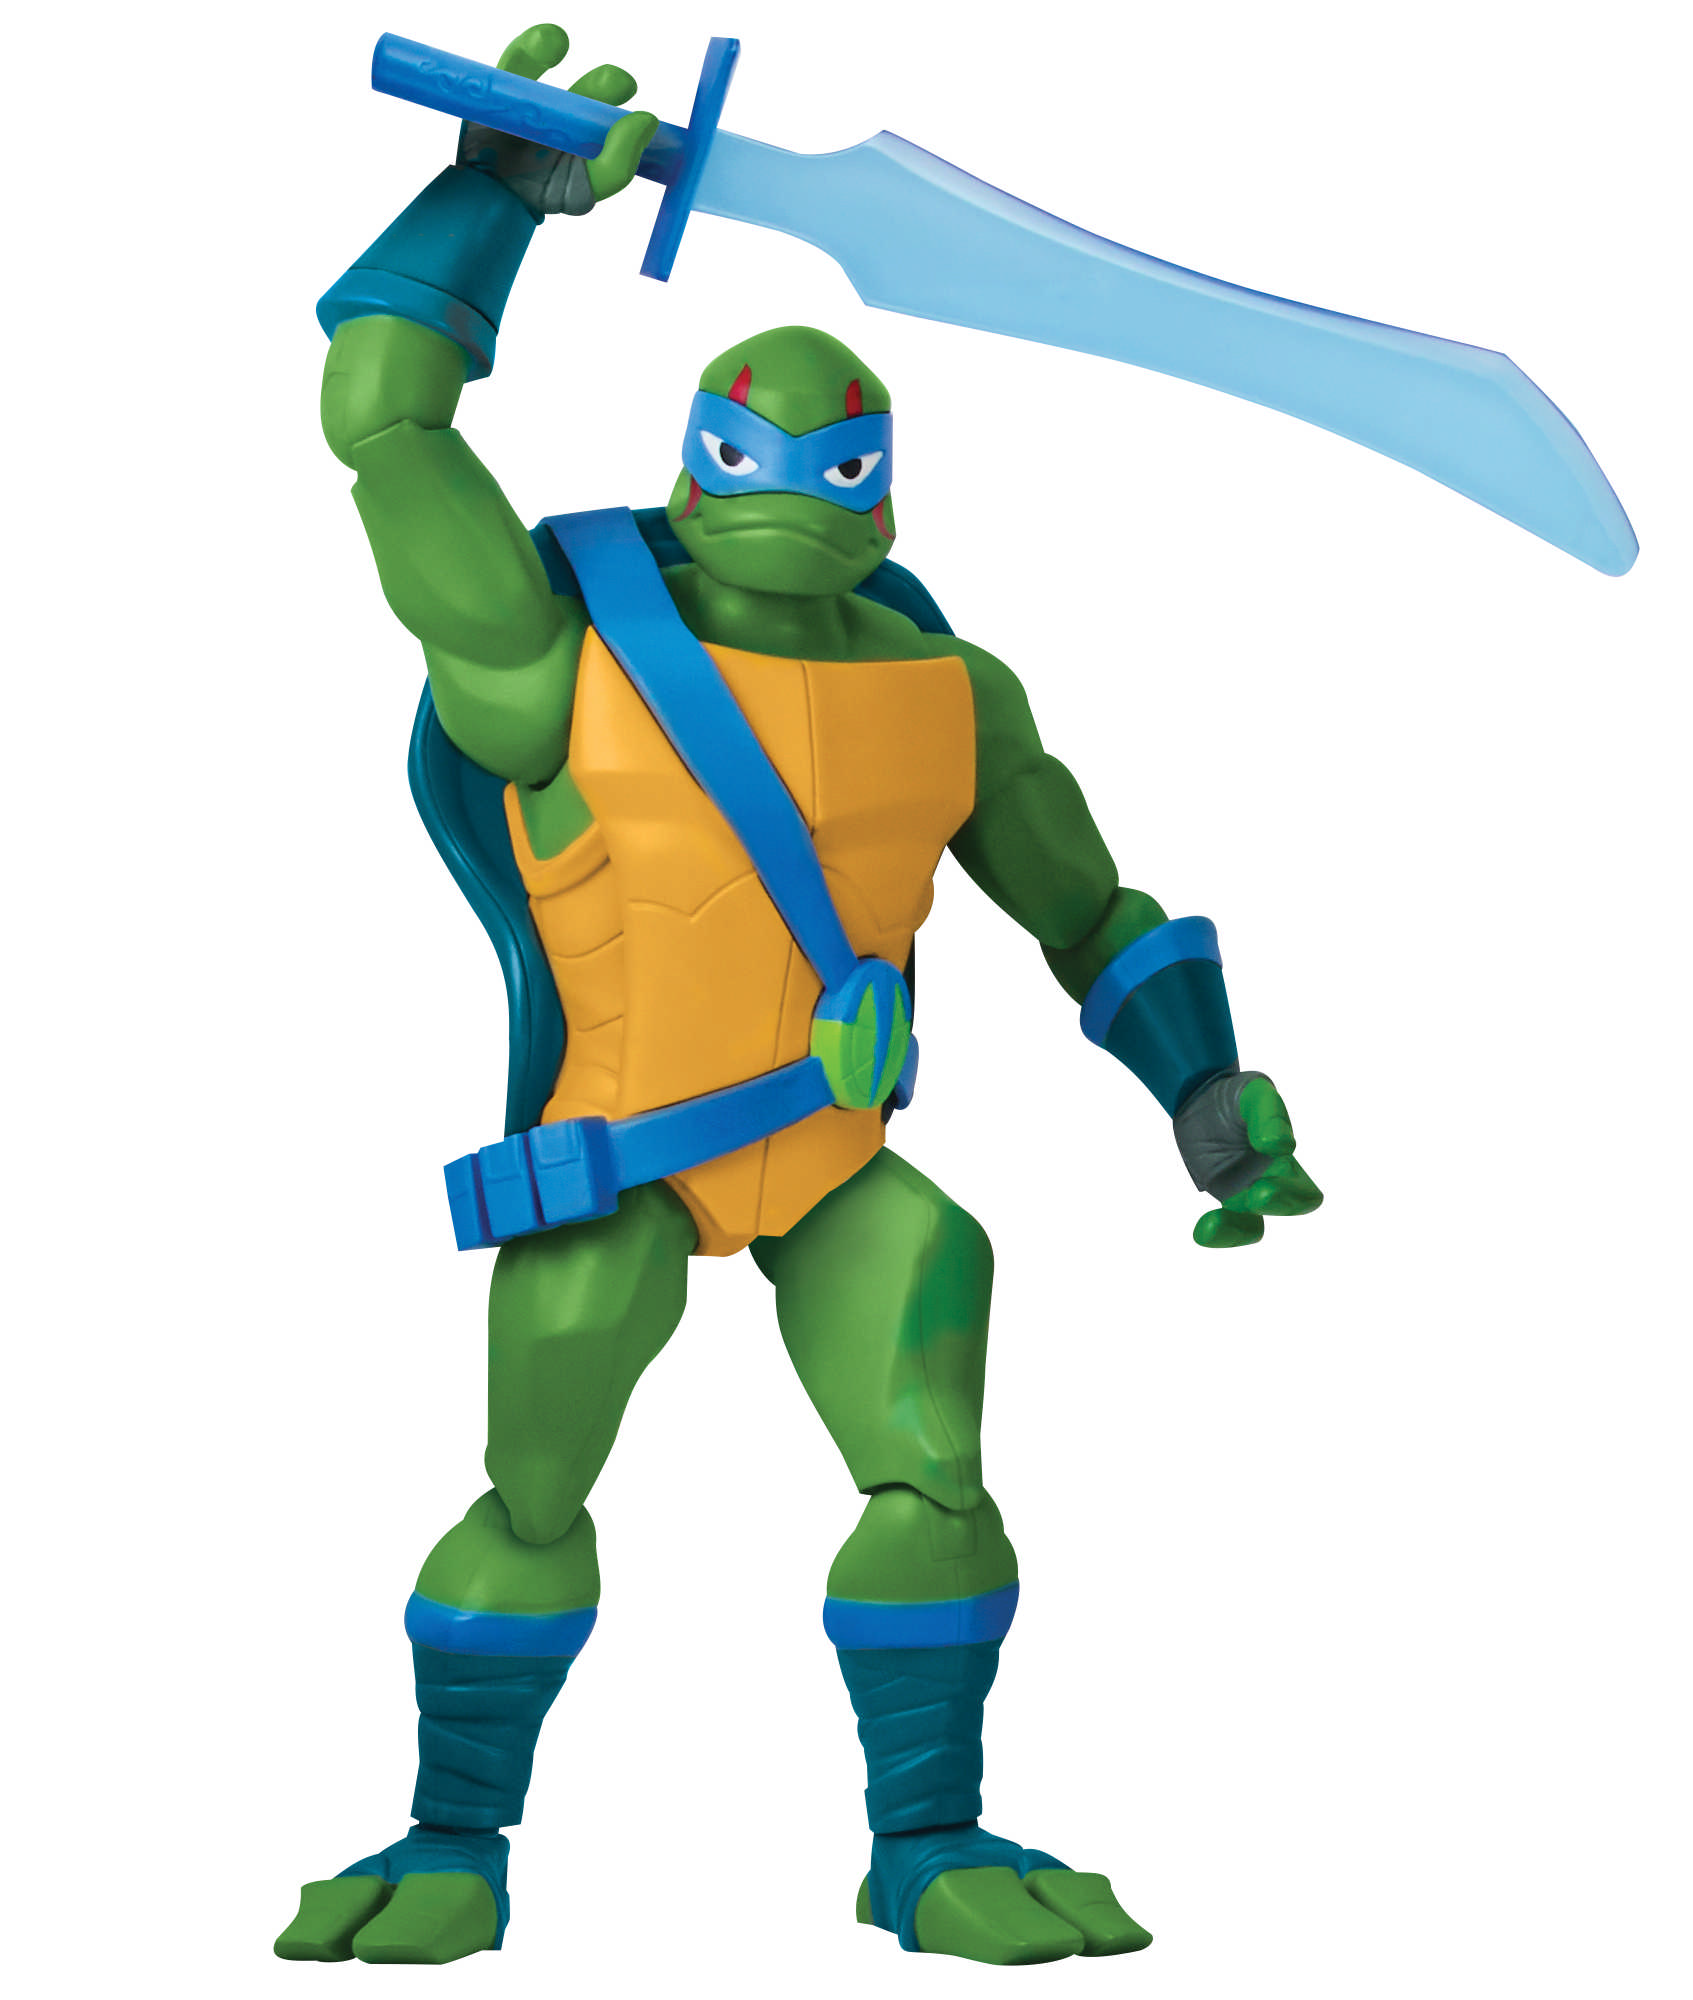 Rise of the Teenage Mutant Ninja Turtles Toys Debut Before ...